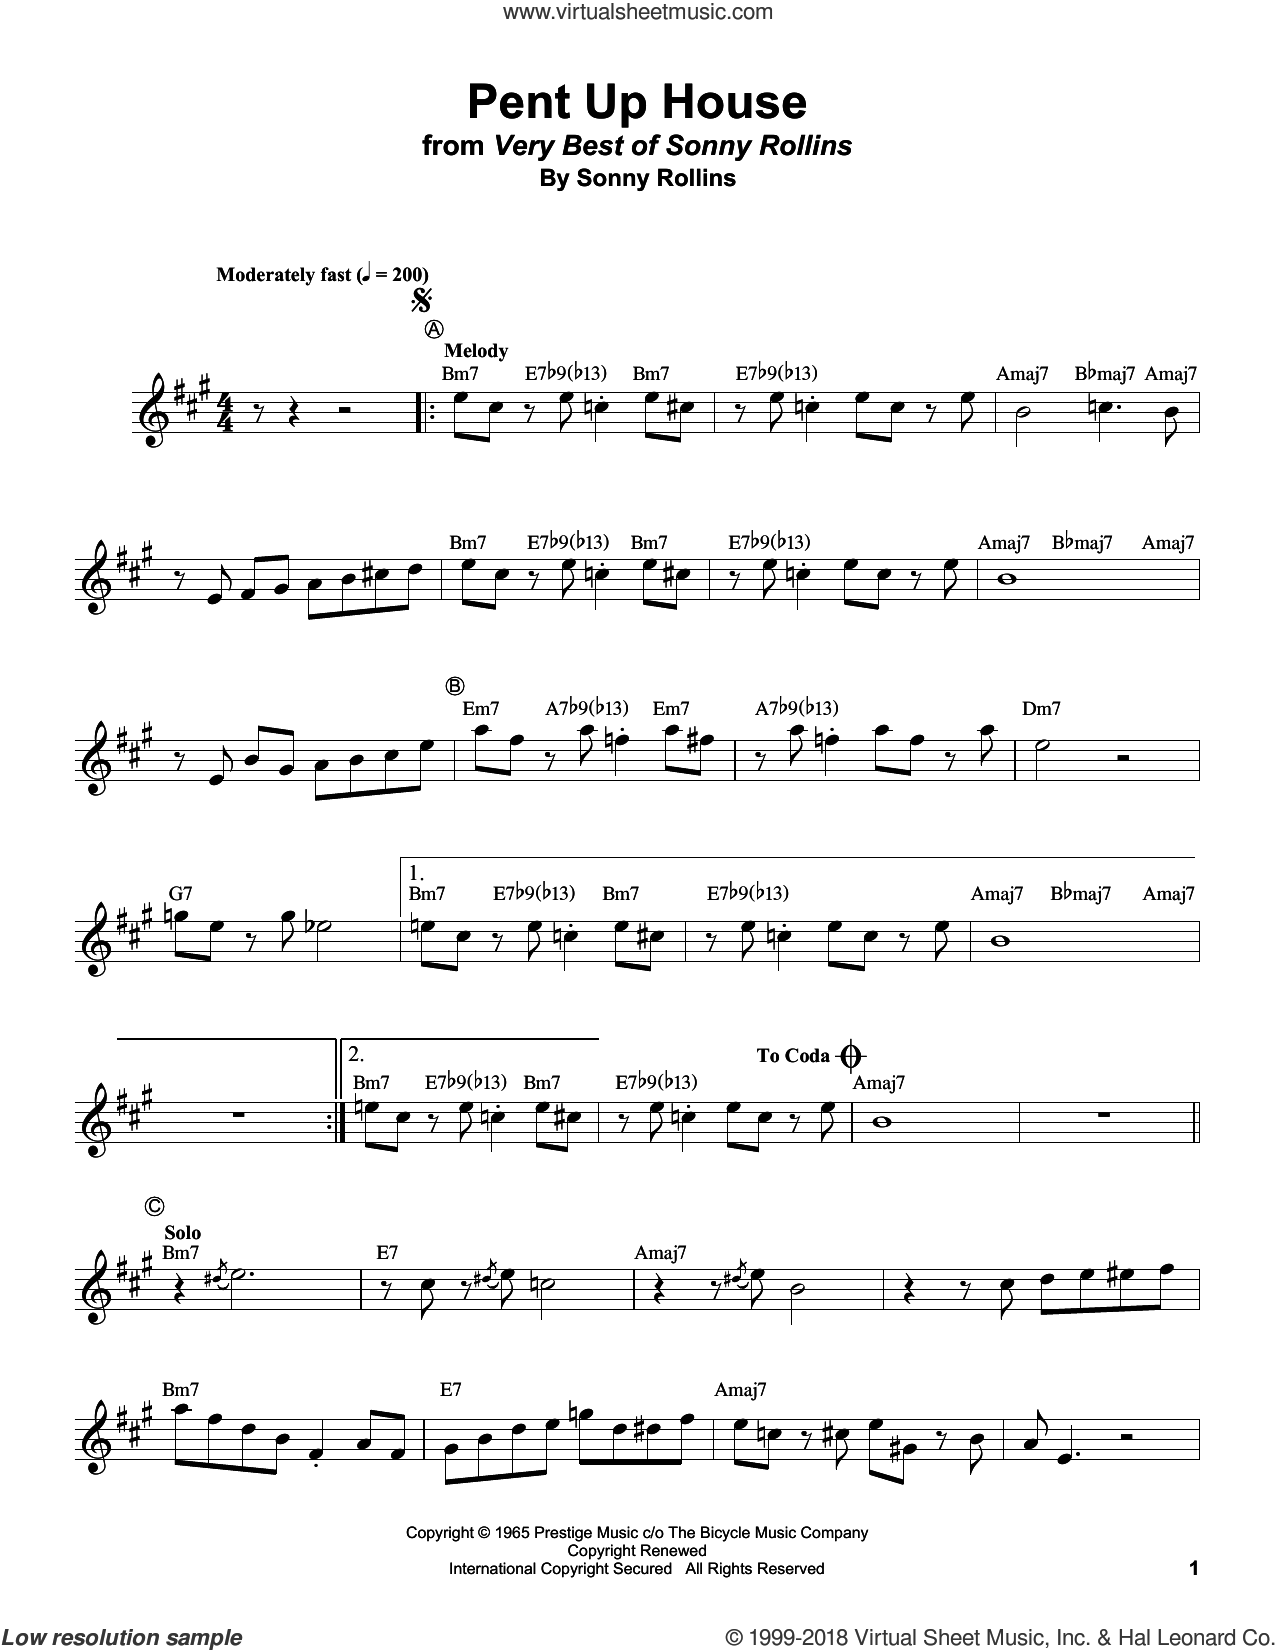 Pent Up House sheet music for trumpet solo (transcription) by Clifford Brown and Sonny Rollins, intermediate trumpet (transcription)